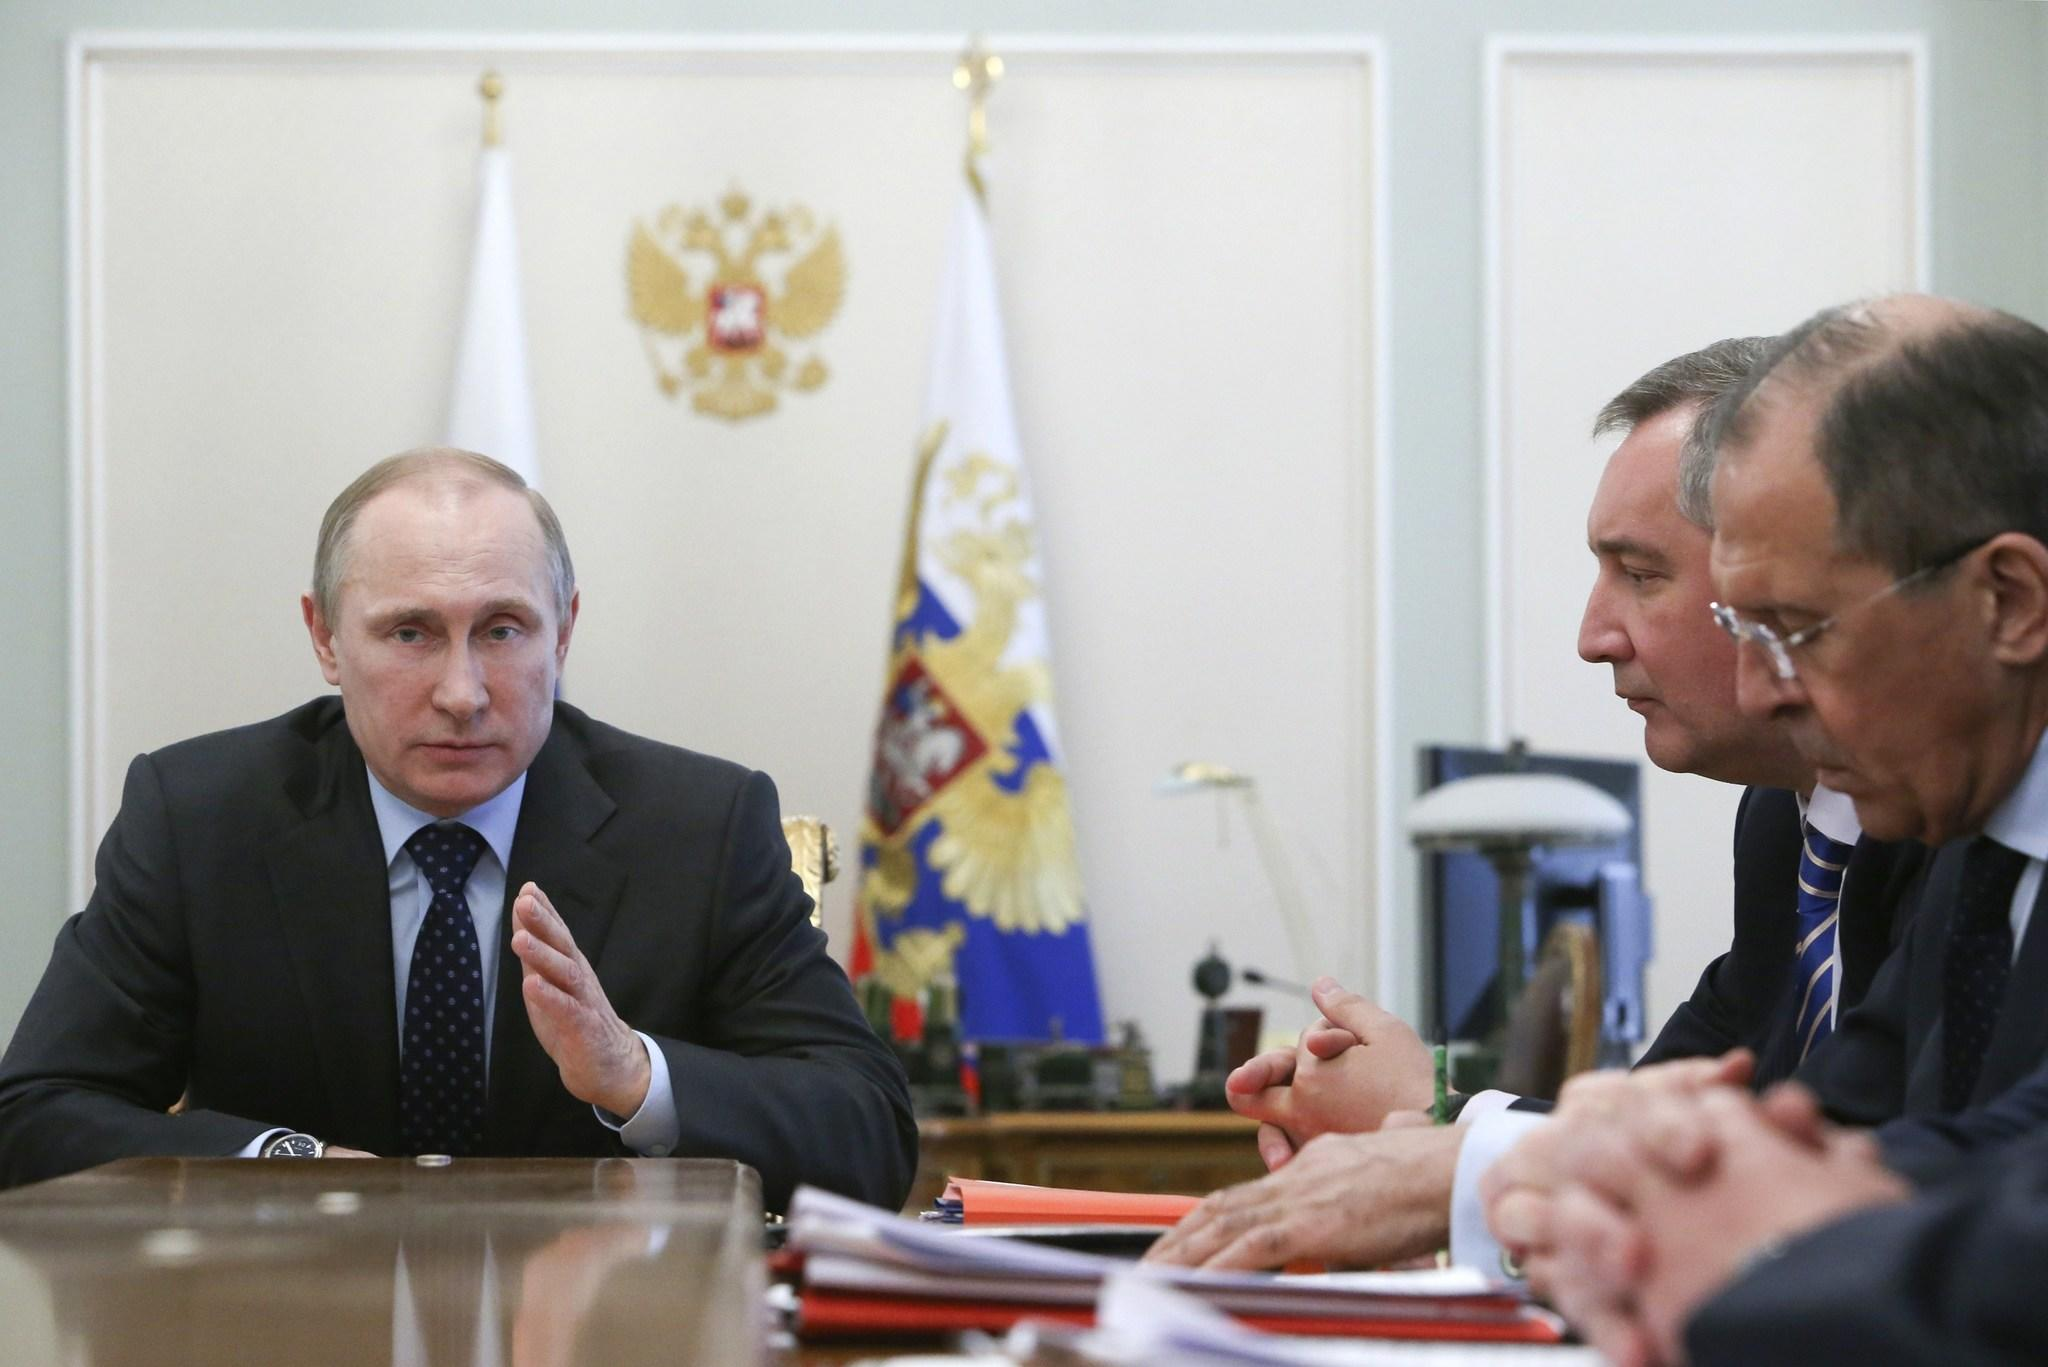 Russia's President Vladimir Putin attends a meeting with members of the government at the Novo-Ogaryovo state residence outside Moscow.